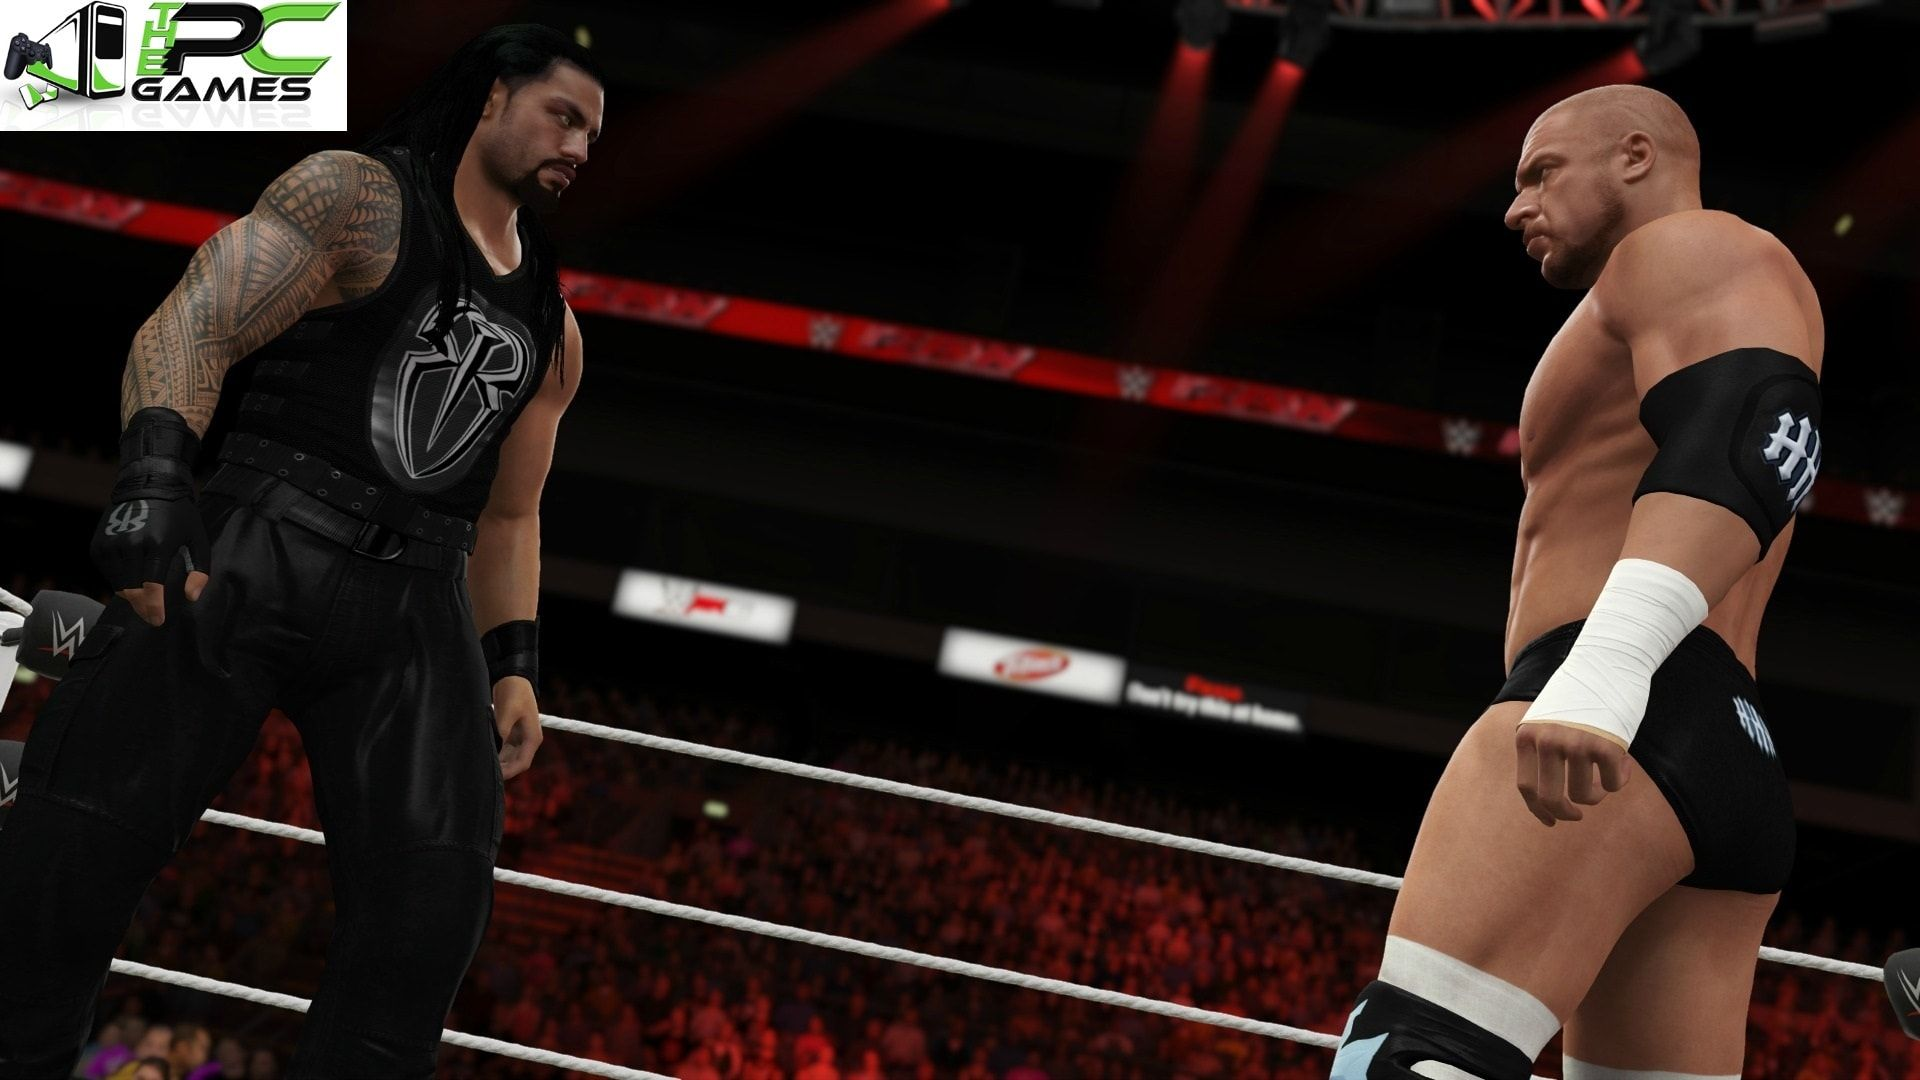 Wwe 2k17 Free Download Pc Game Setup In Single Direct Link For Windows Wwe 2k17 Is An Imposing Fighting And Download Games Pc Games Download Wwe Game Download